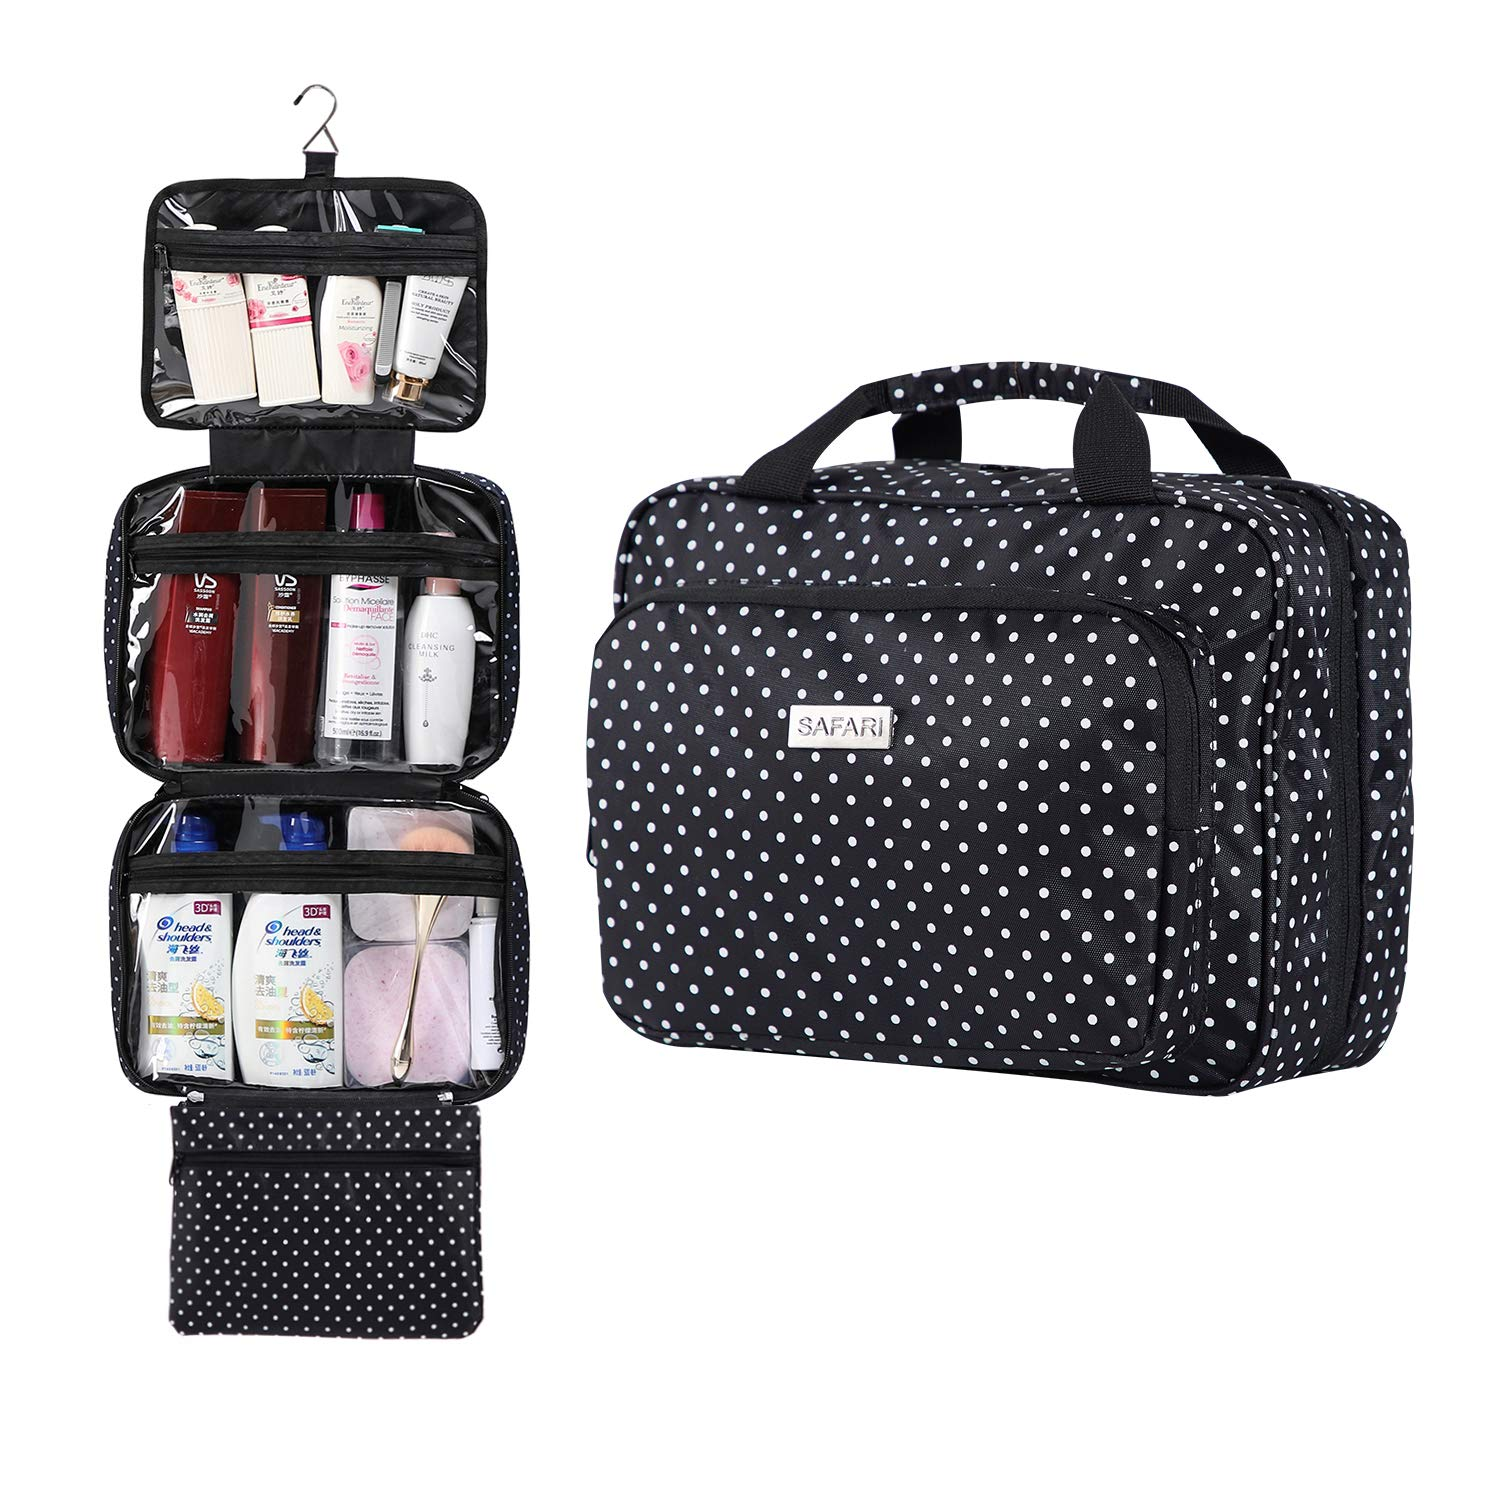 Large Hanging Travel Toiletry Bag for Women by SAFARI (Polka Dot) - Waterproof and Durable Fabric with Clear Compartments and Detachable Pouch - The Perfect Gift